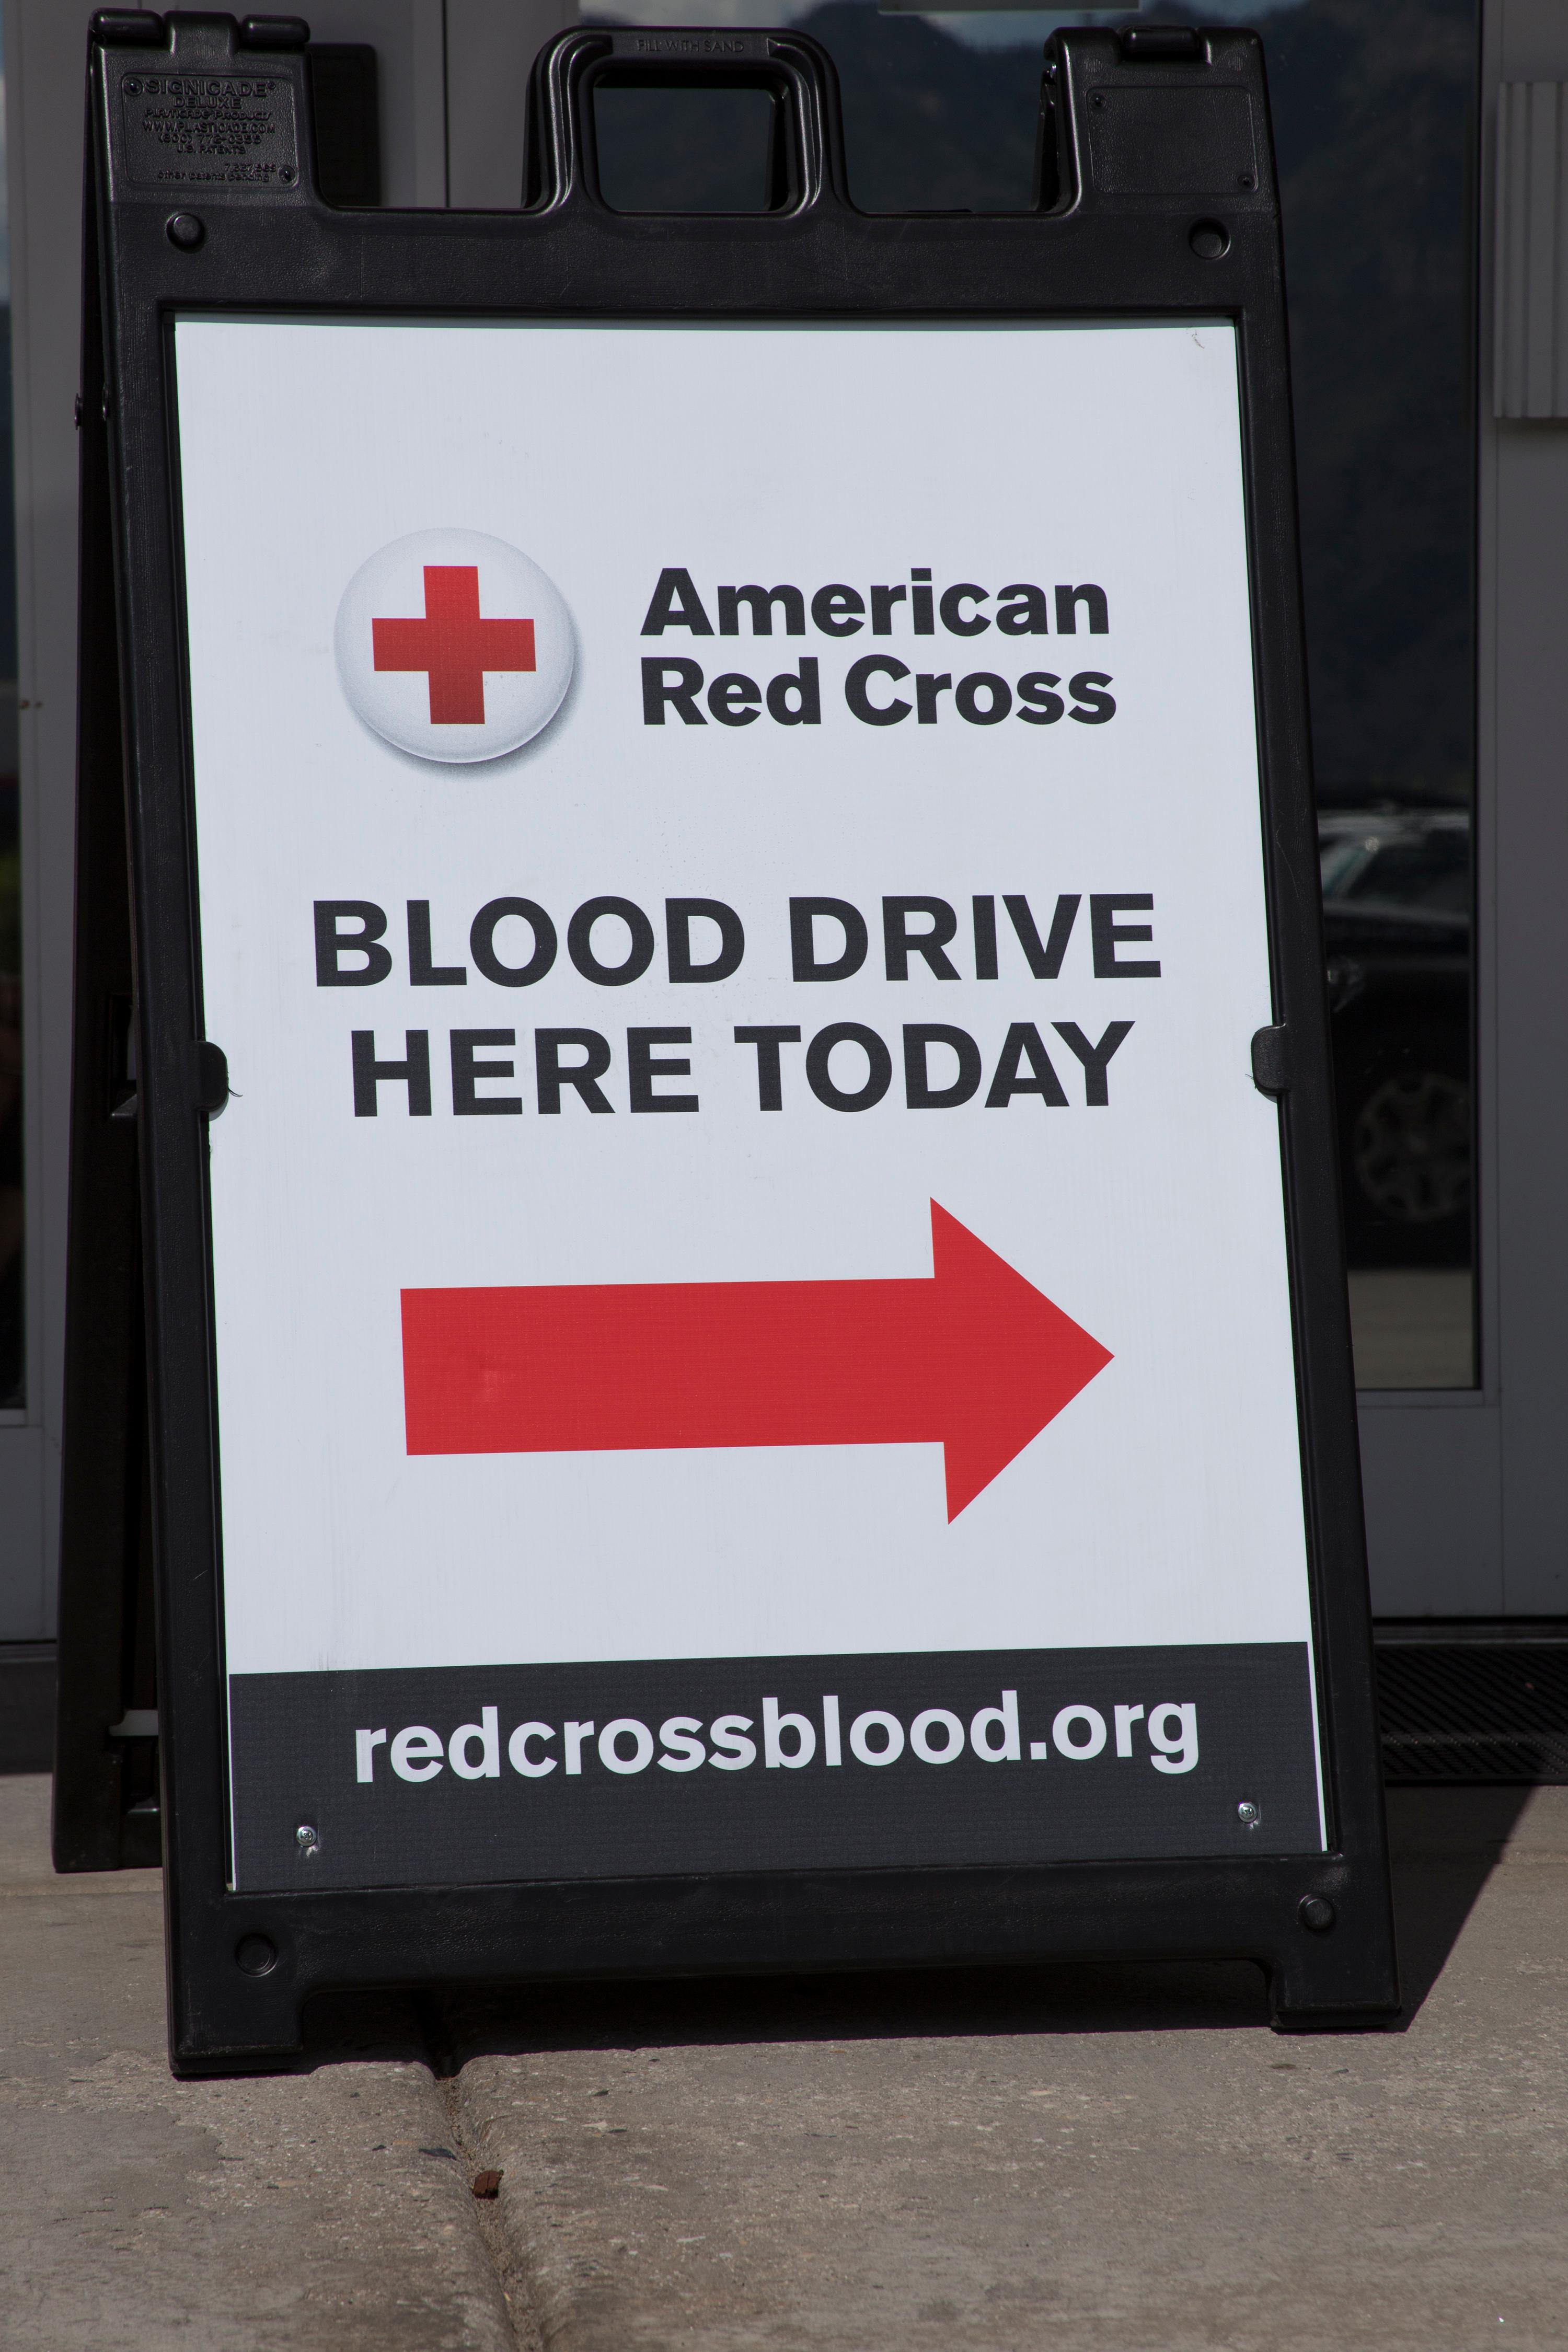 July 23, 2015. Salt Lake Donor Center, Salt Lake City, Utah. Blood Drive Today sign. Photo by Amanda Romney/American Red Cross